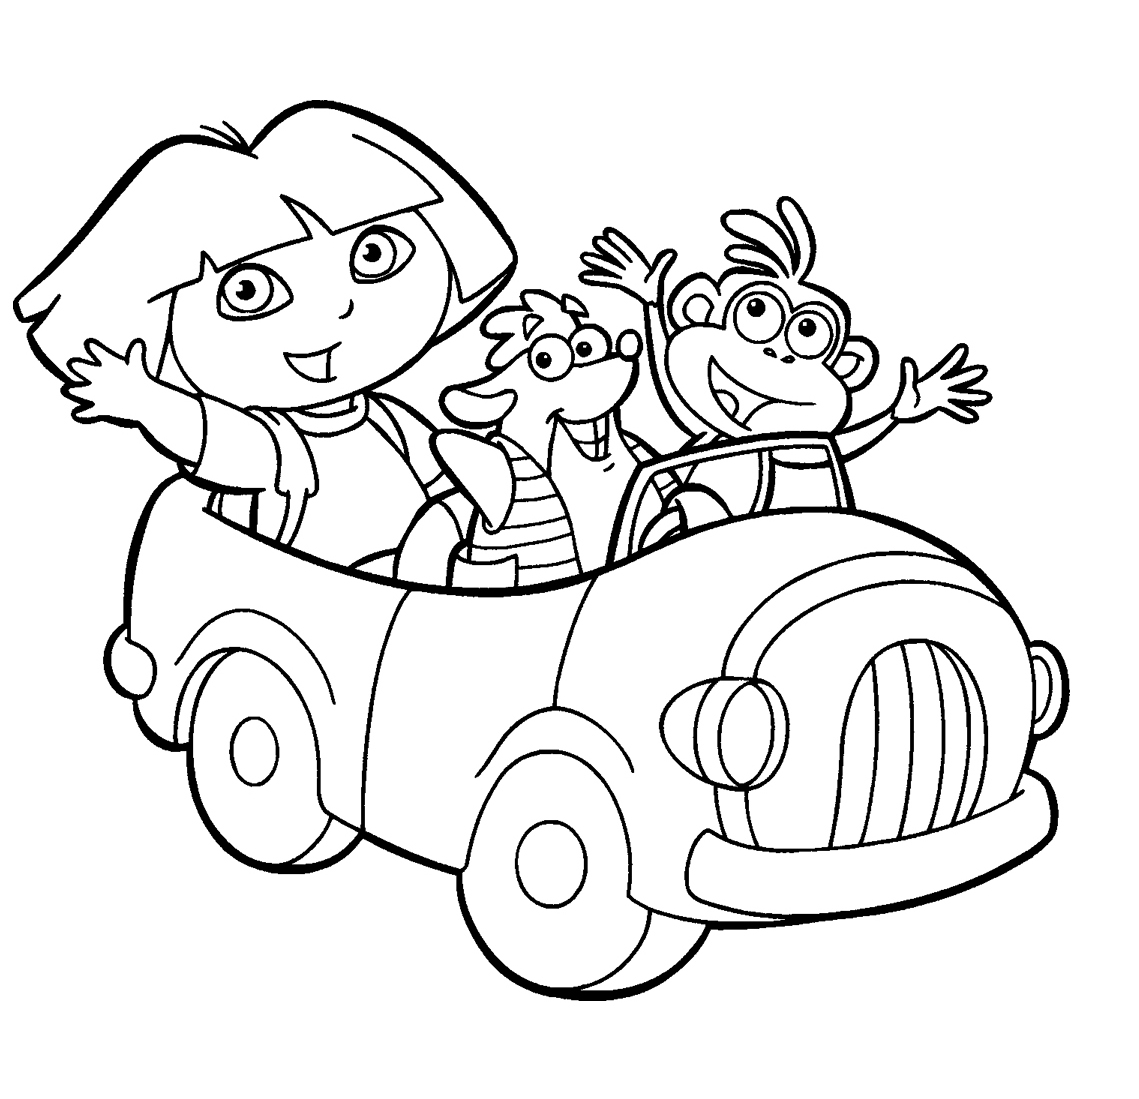 Diego Coloring Page | Dora the Explorer Coloring Pages